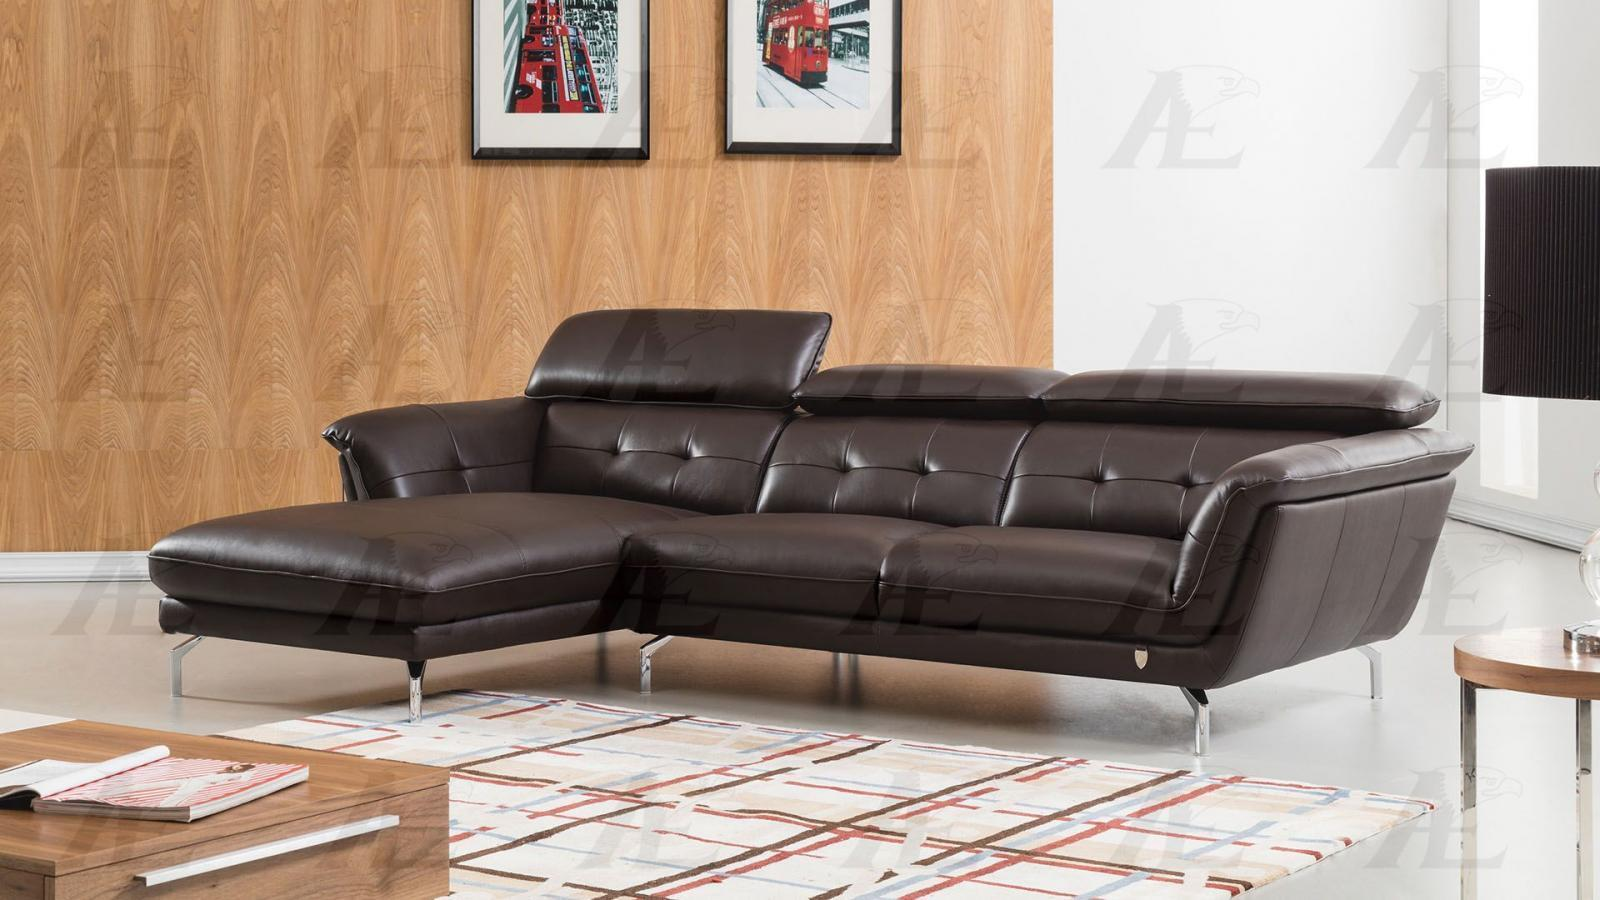 American Eagle EK-L083-DC  Sectional Sofa Left Hand Chase Italian Leather 2pcs